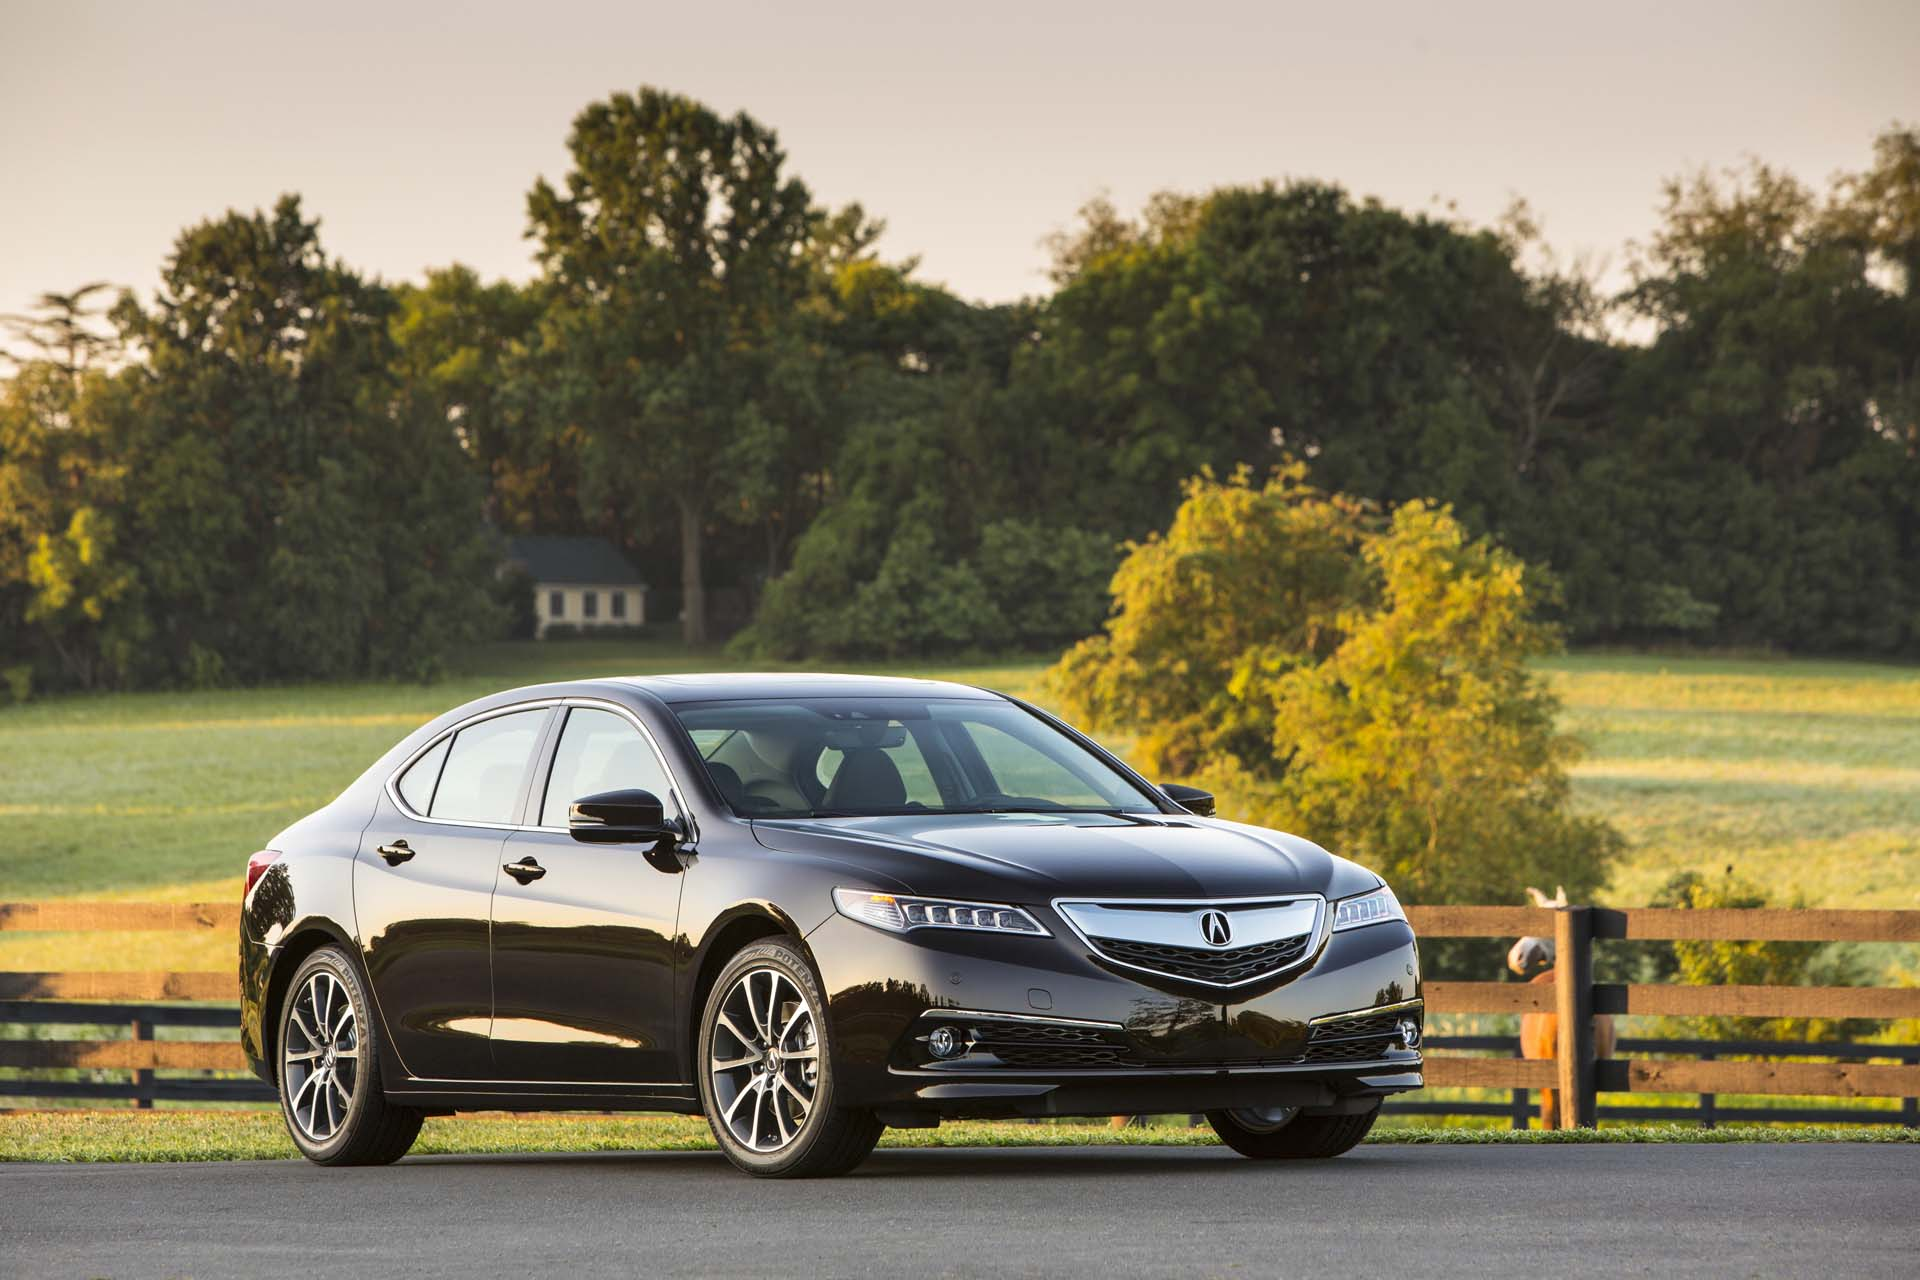 2017 acura tlx gas mileage the car connection. Black Bedroom Furniture Sets. Home Design Ideas